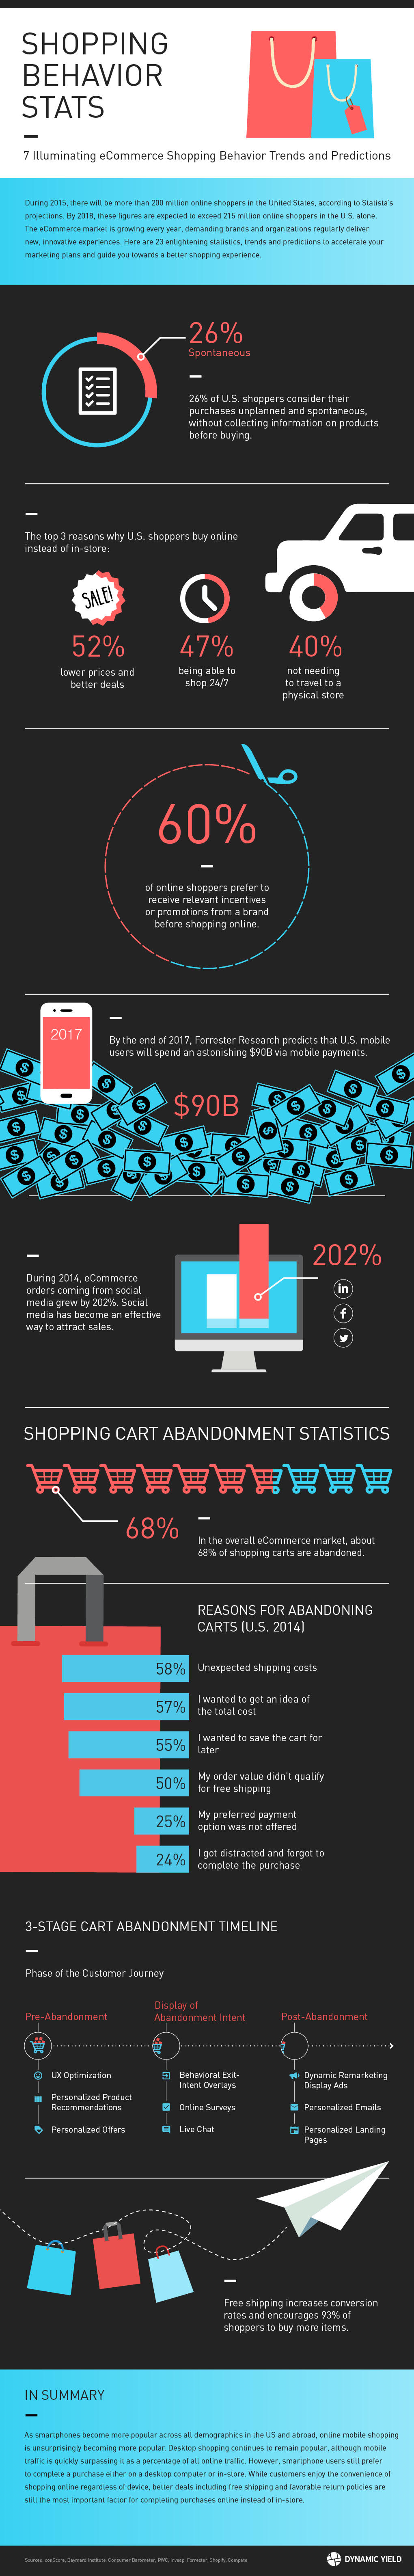 eCommerce Shopping Behavior Trends and Predictions